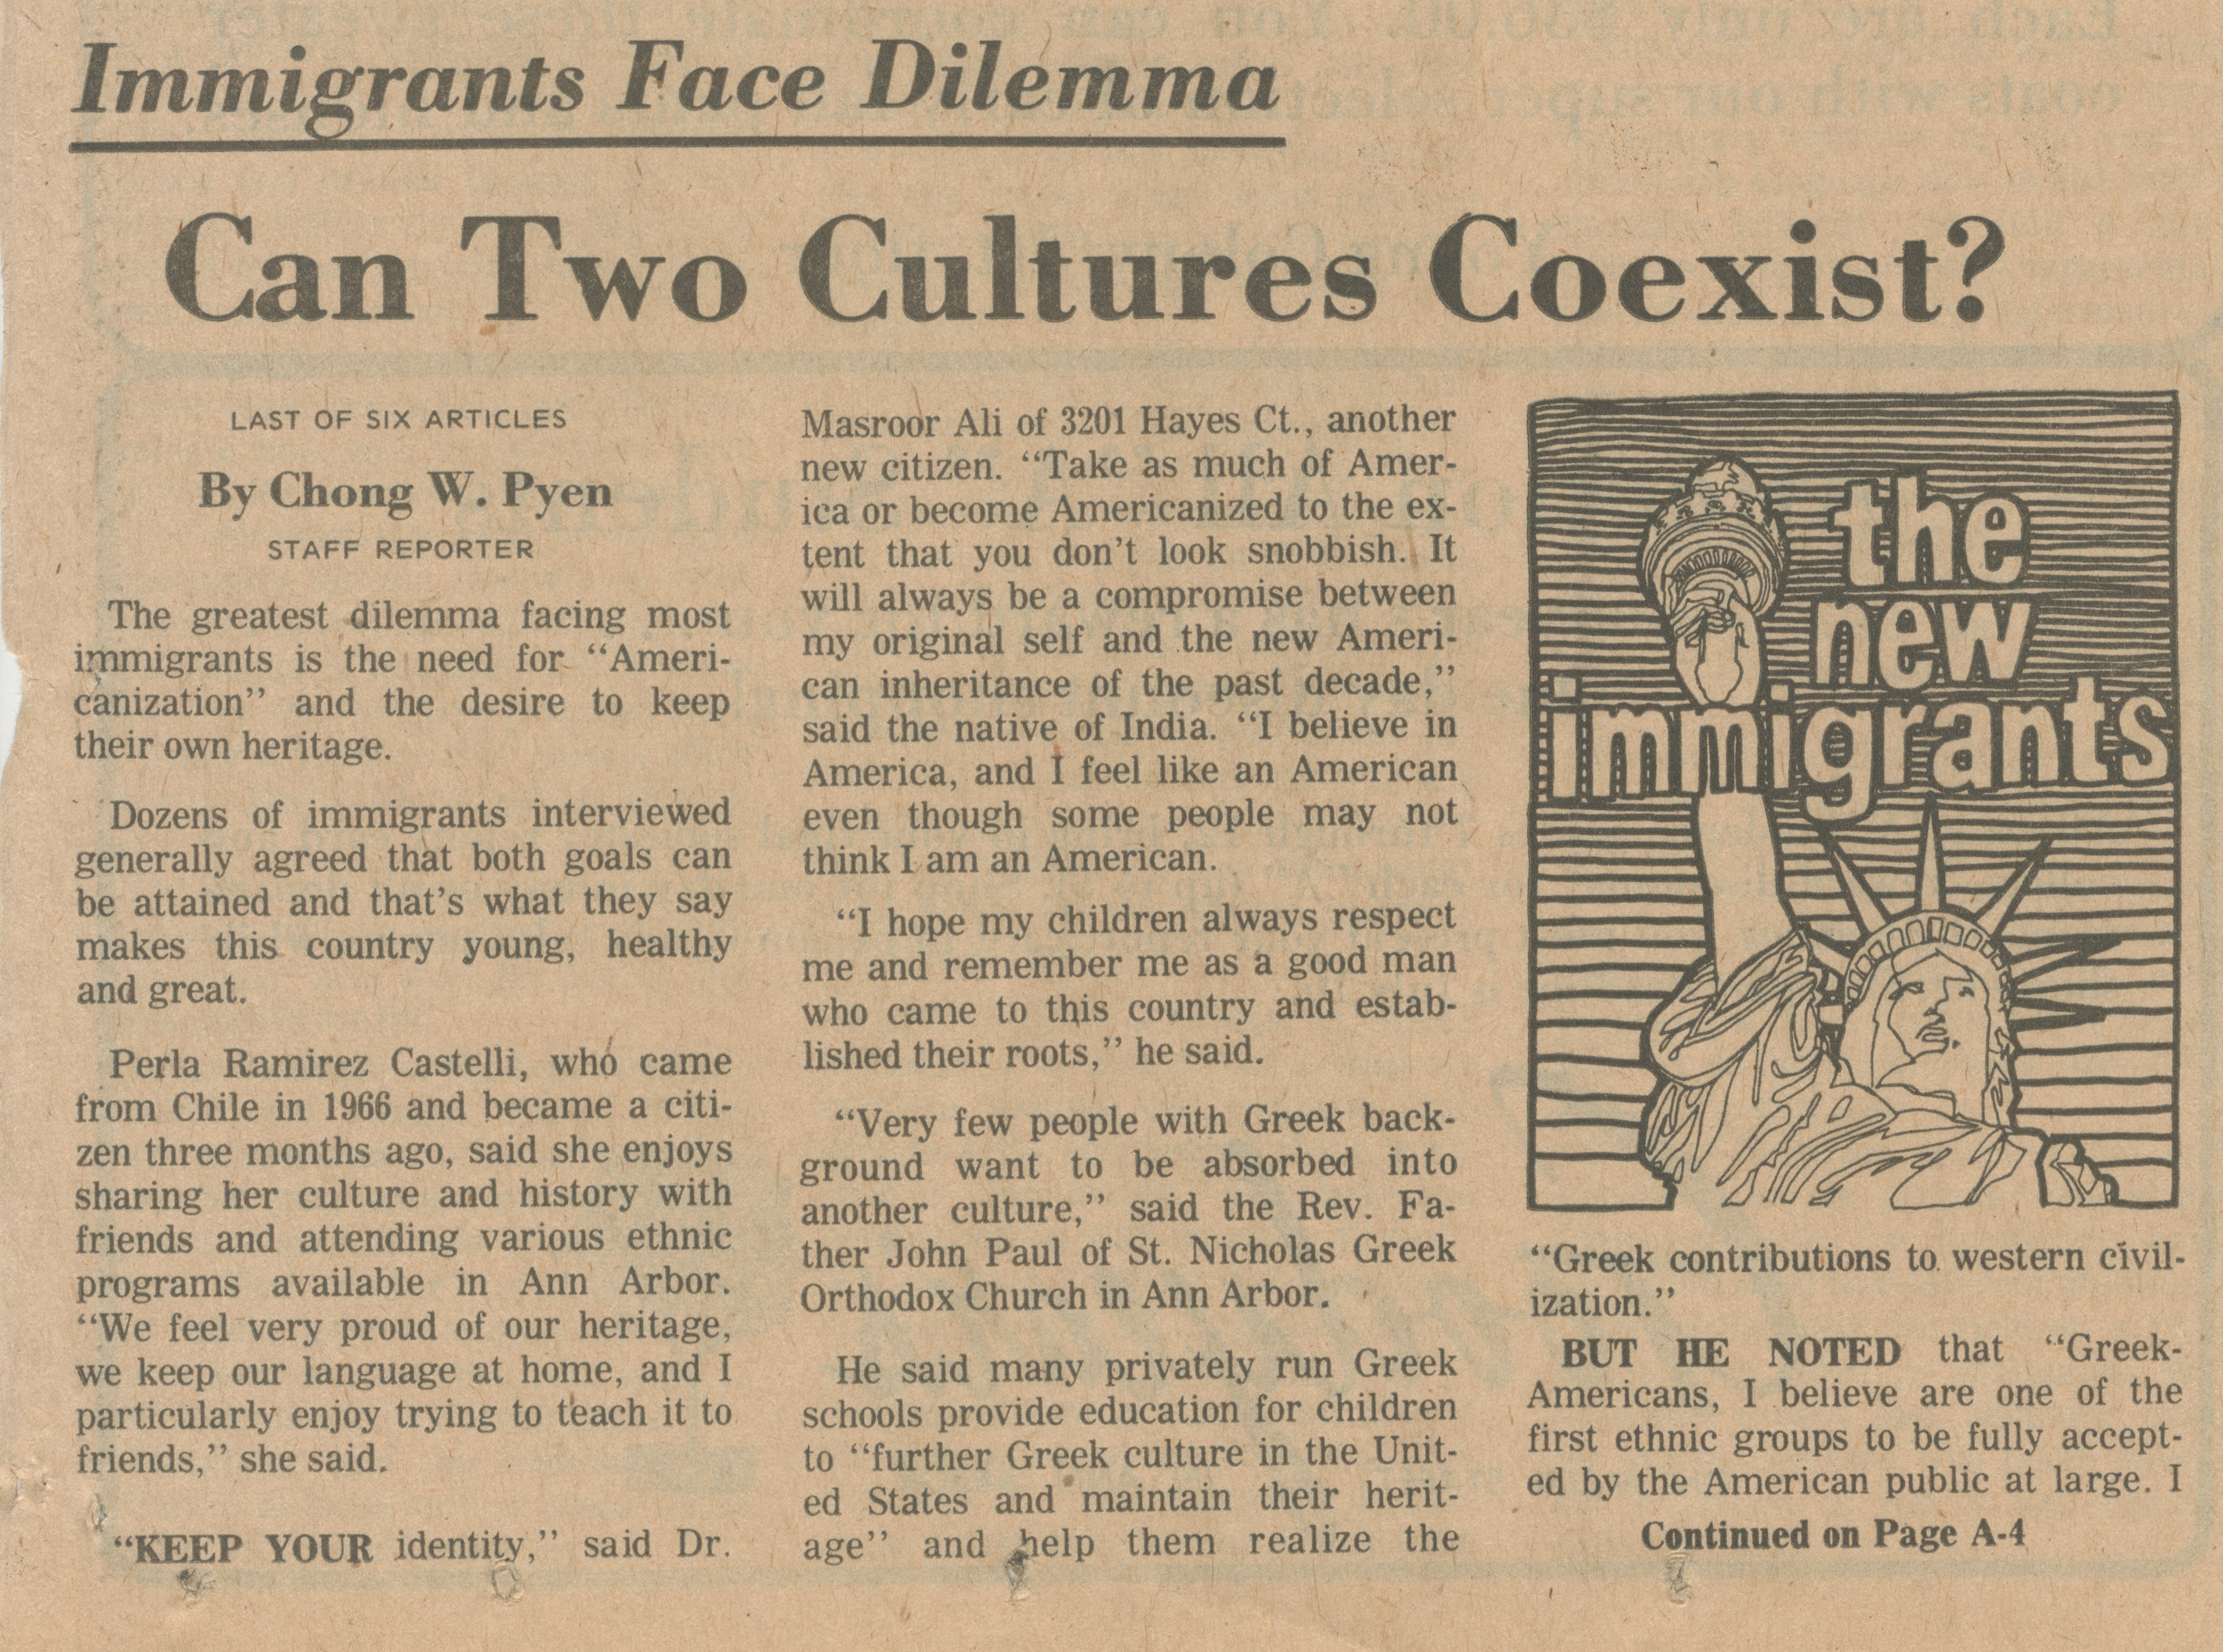 Can Two Cultures Coexist?  Immigrants Face Dilemma image